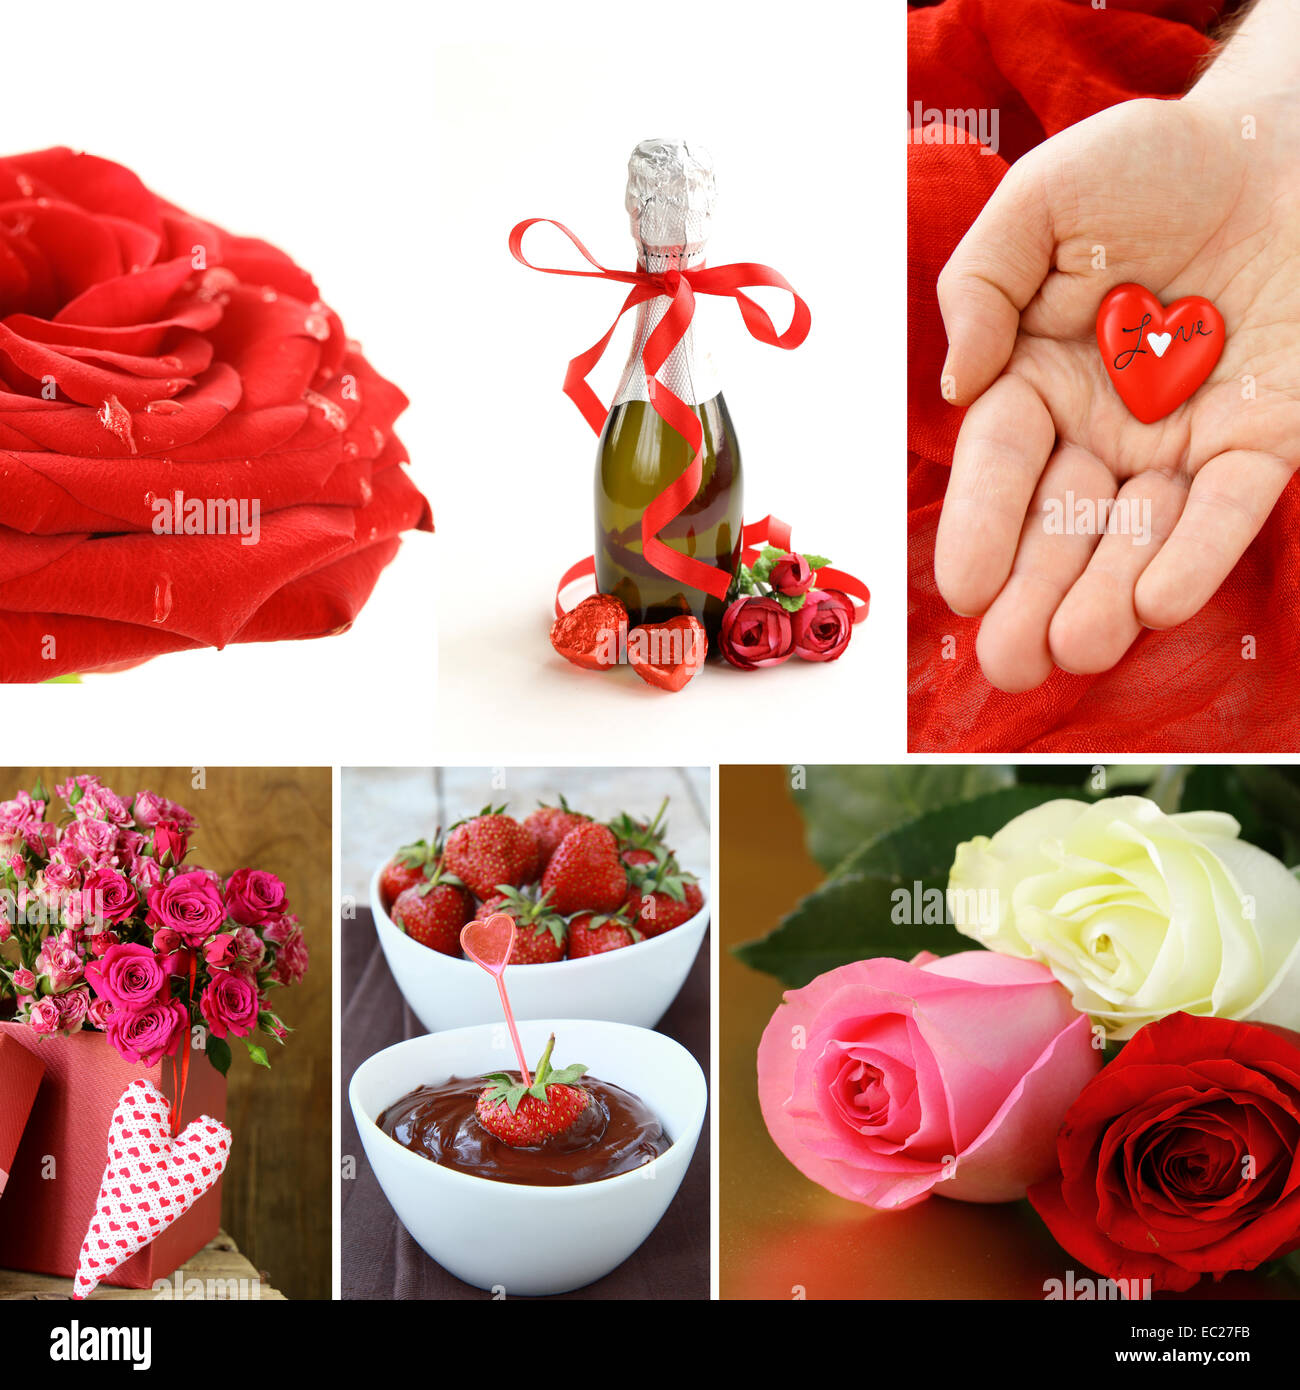 collage for the day of St. Valentine - flowers, hearts, gifts - Stock Image